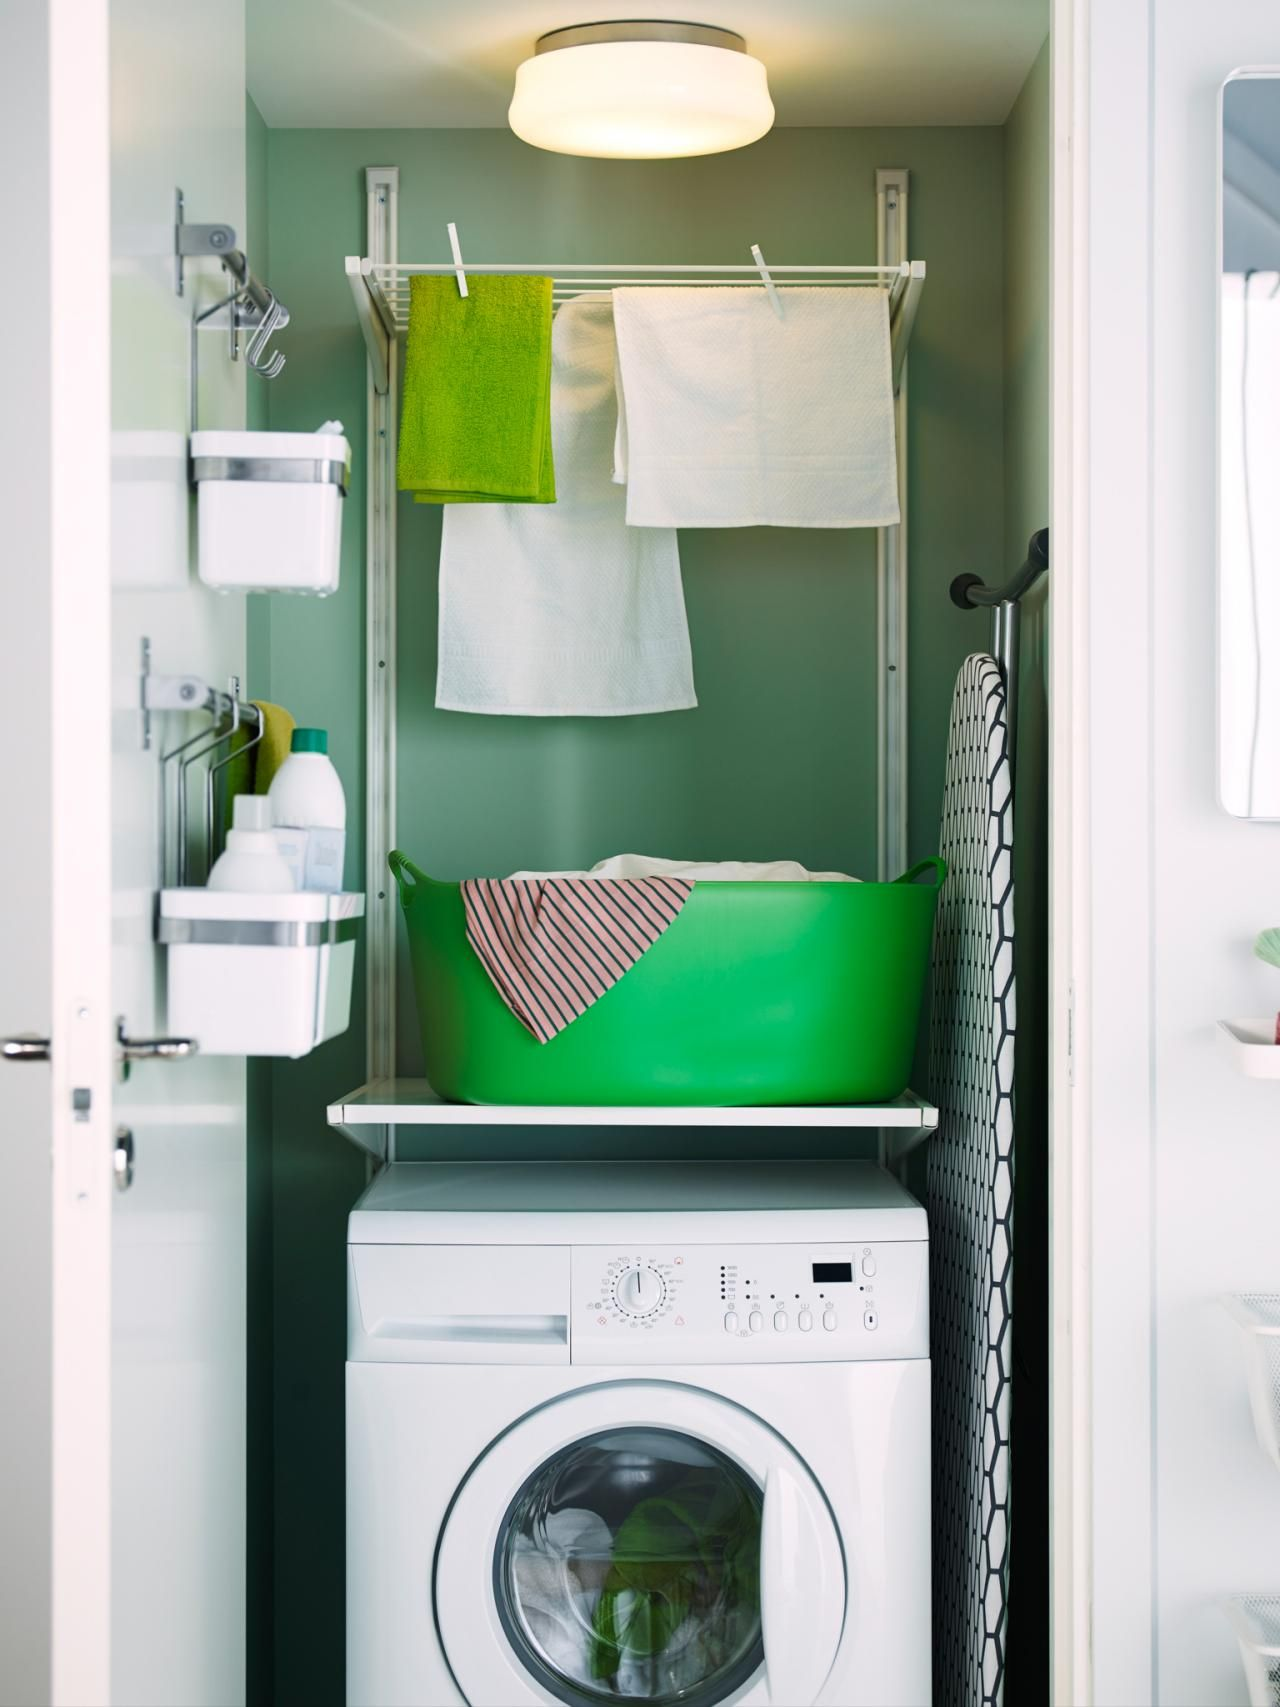 Tiny Green Laundry Room With Adjustable Shelving. No Built In Cabinets? No  Problem